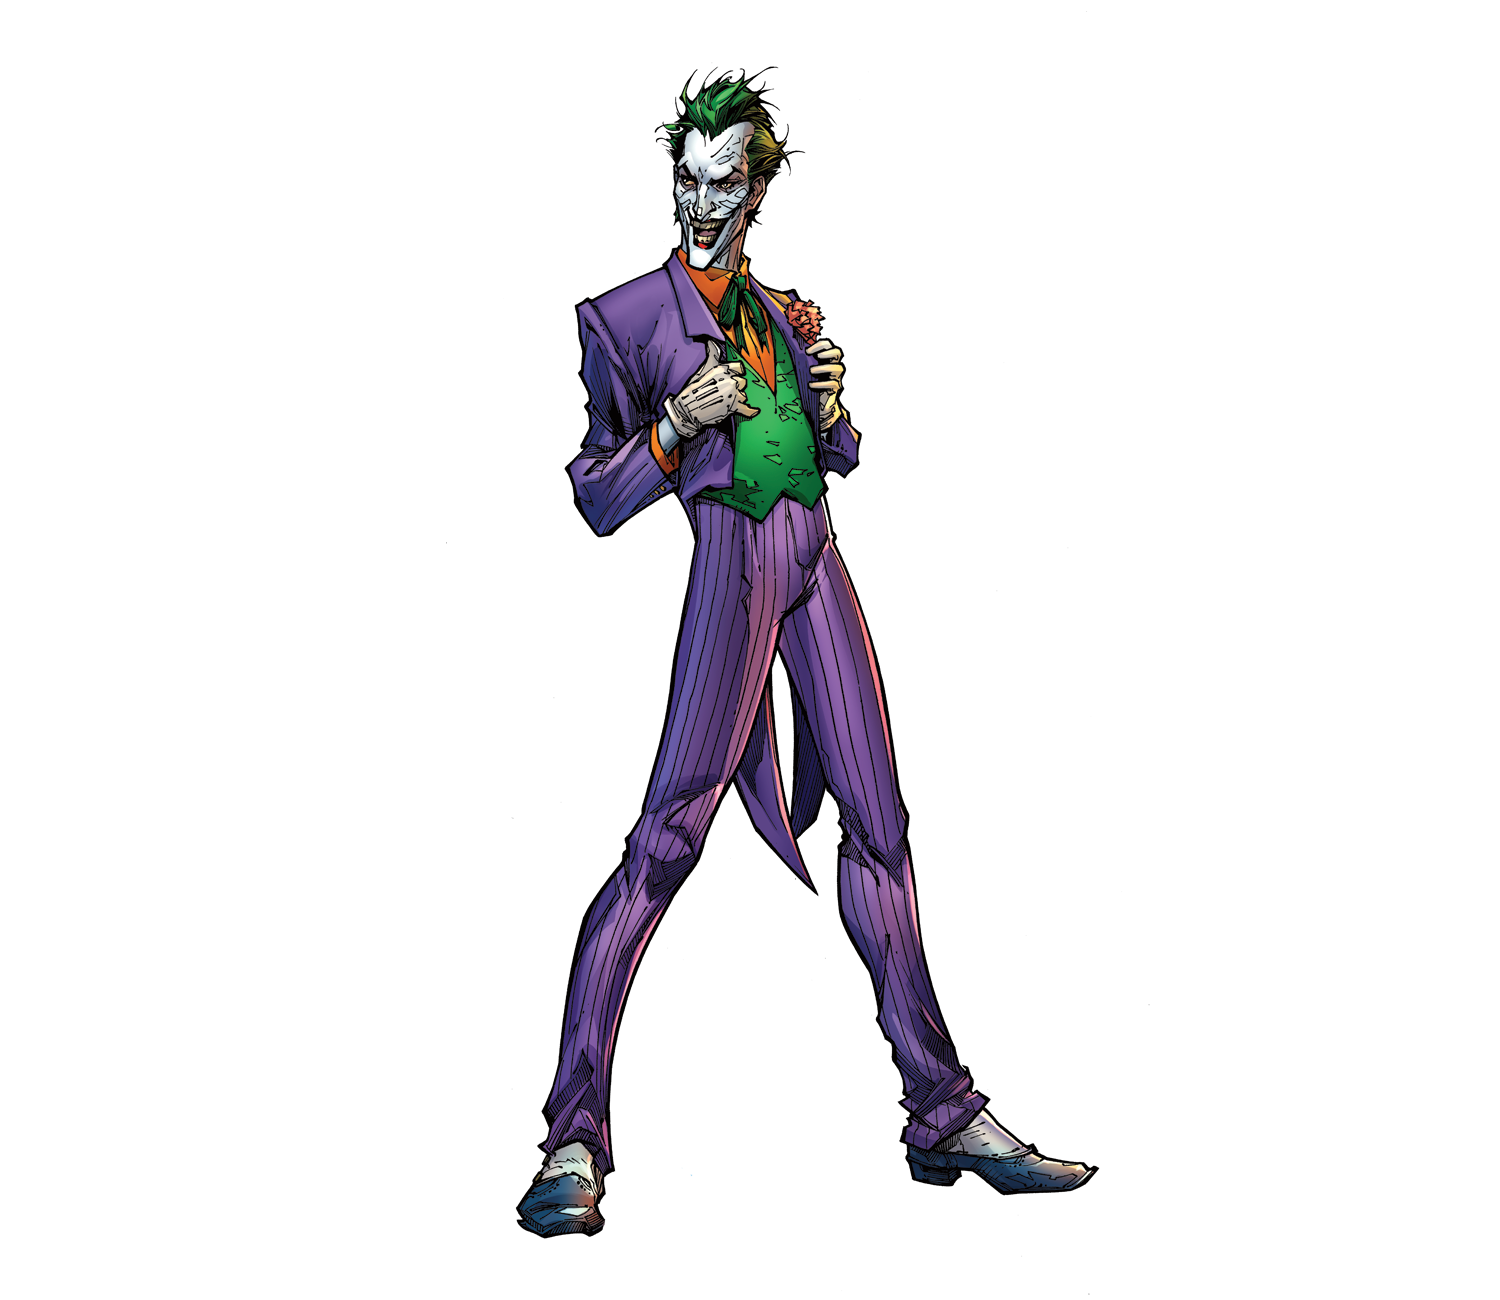 Batman Joker Png Hd Png Svg Clip Art For Web Download Clip Art Png Icon Arts